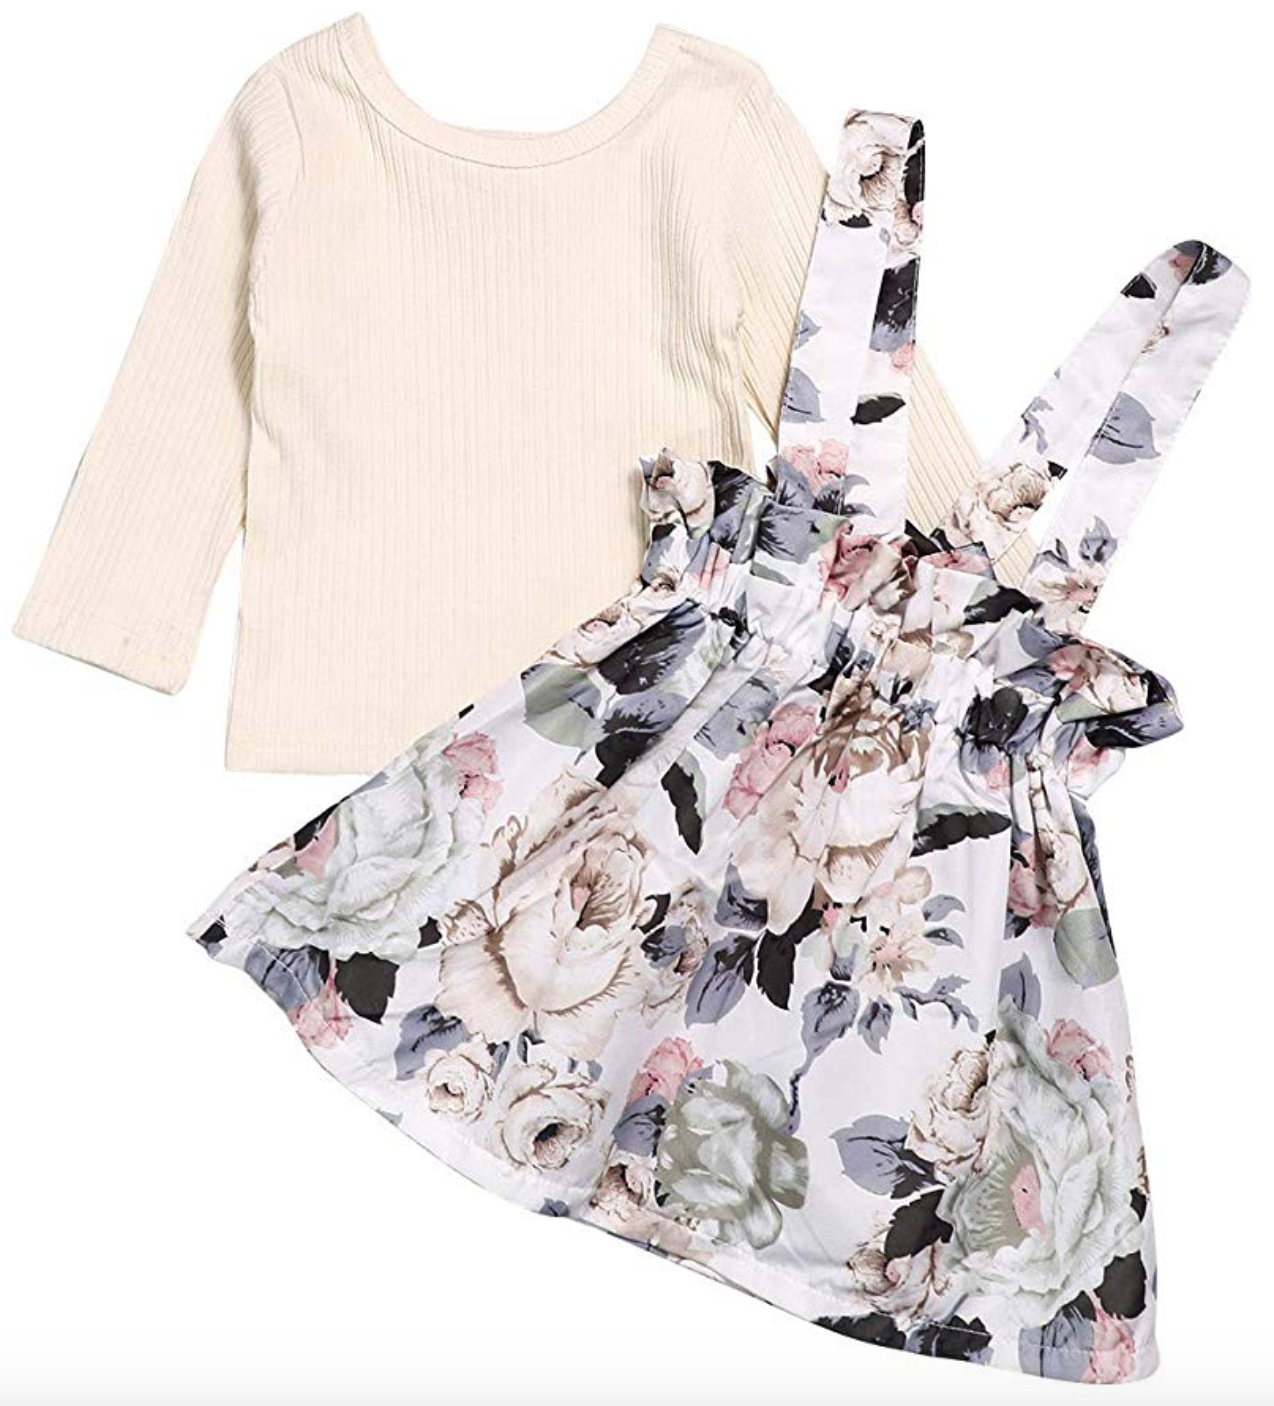 Skirt Outfit Set Long Sleeve Ruffle Romper Top + Floral Strap Skirt Tutu Dress